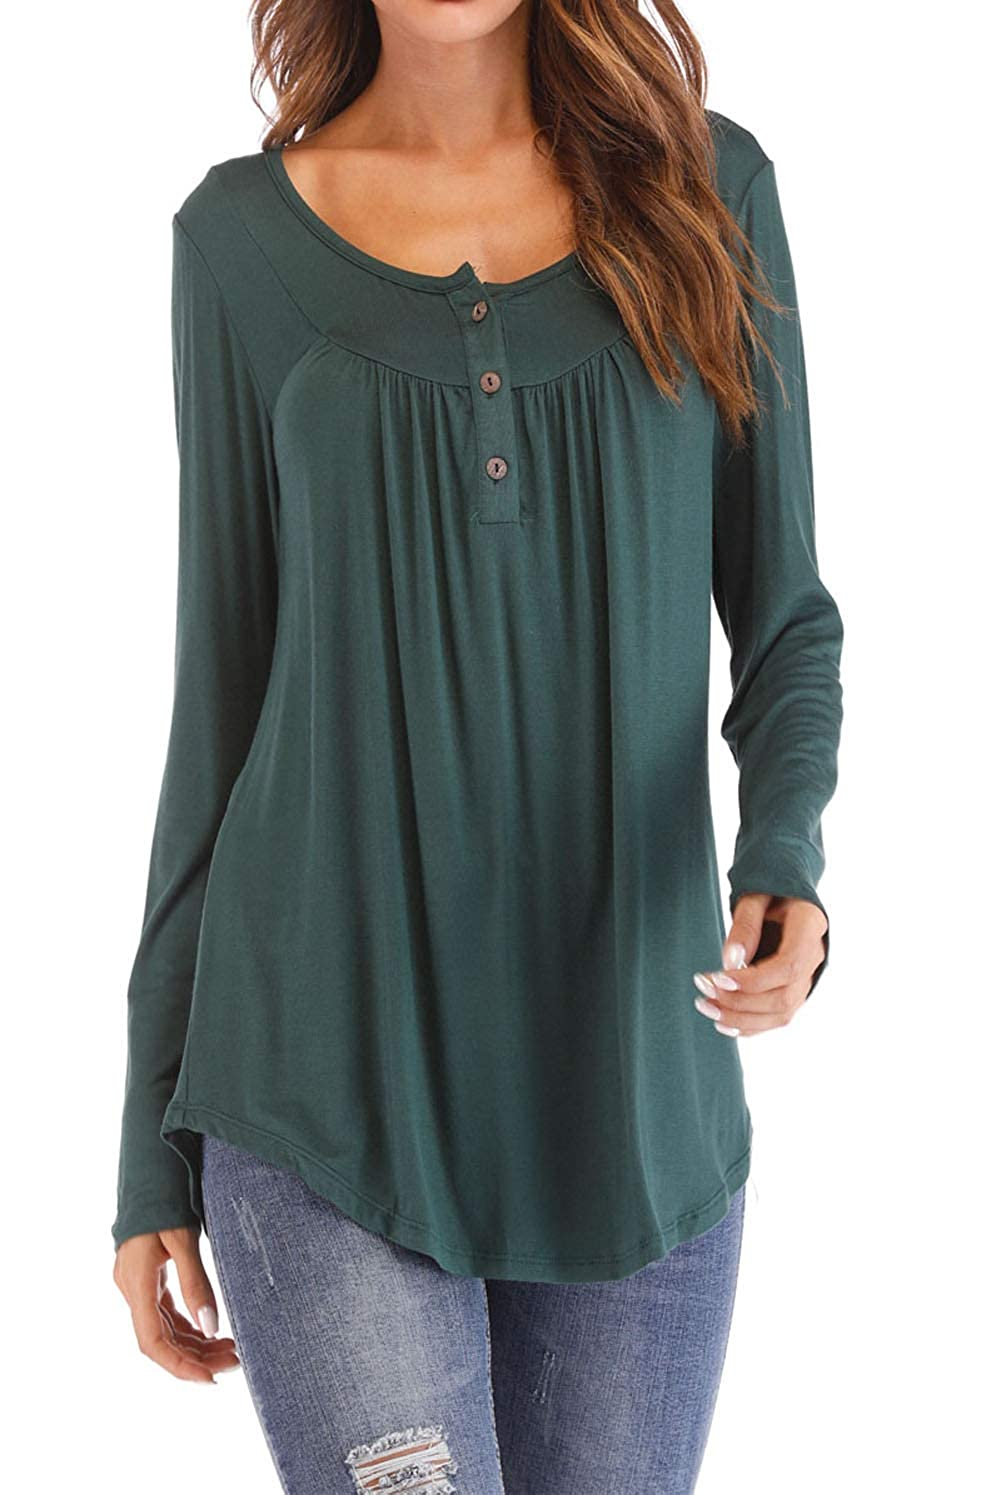 Tomlyws Women's Blouse Long Sleeve Botton up T-Shirt Comfy Casual Flattering T Shirt Tops for Women WT69-$P